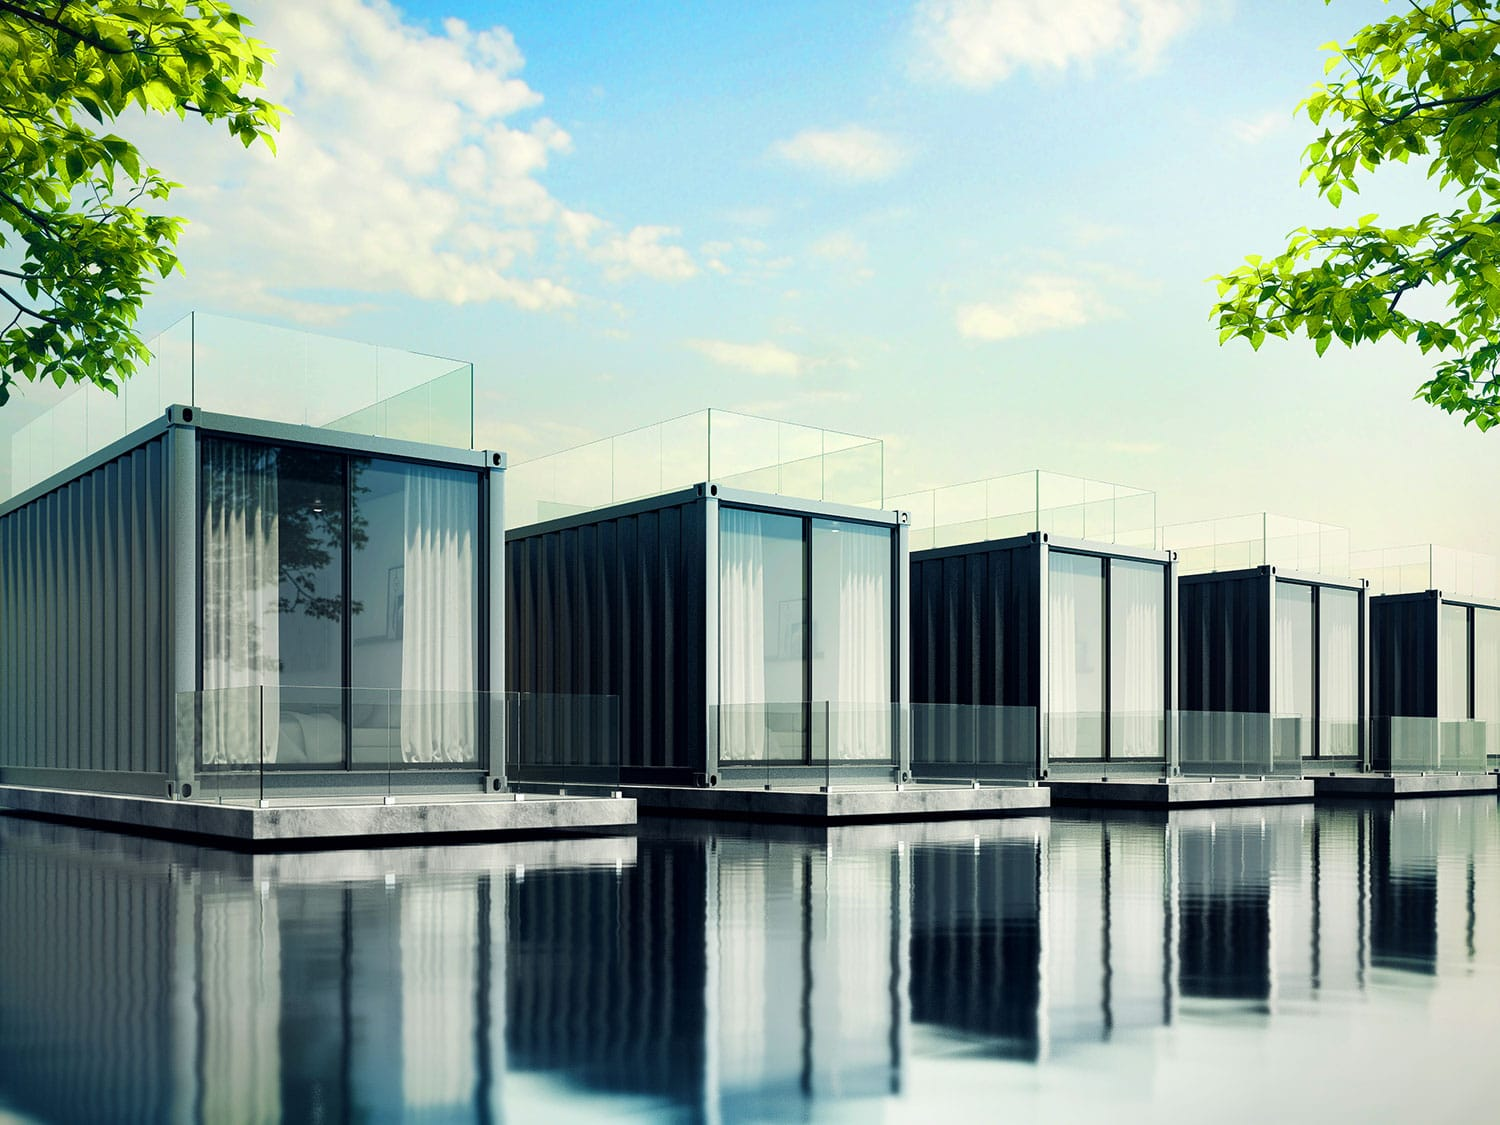 Converted Shipping Containers on water